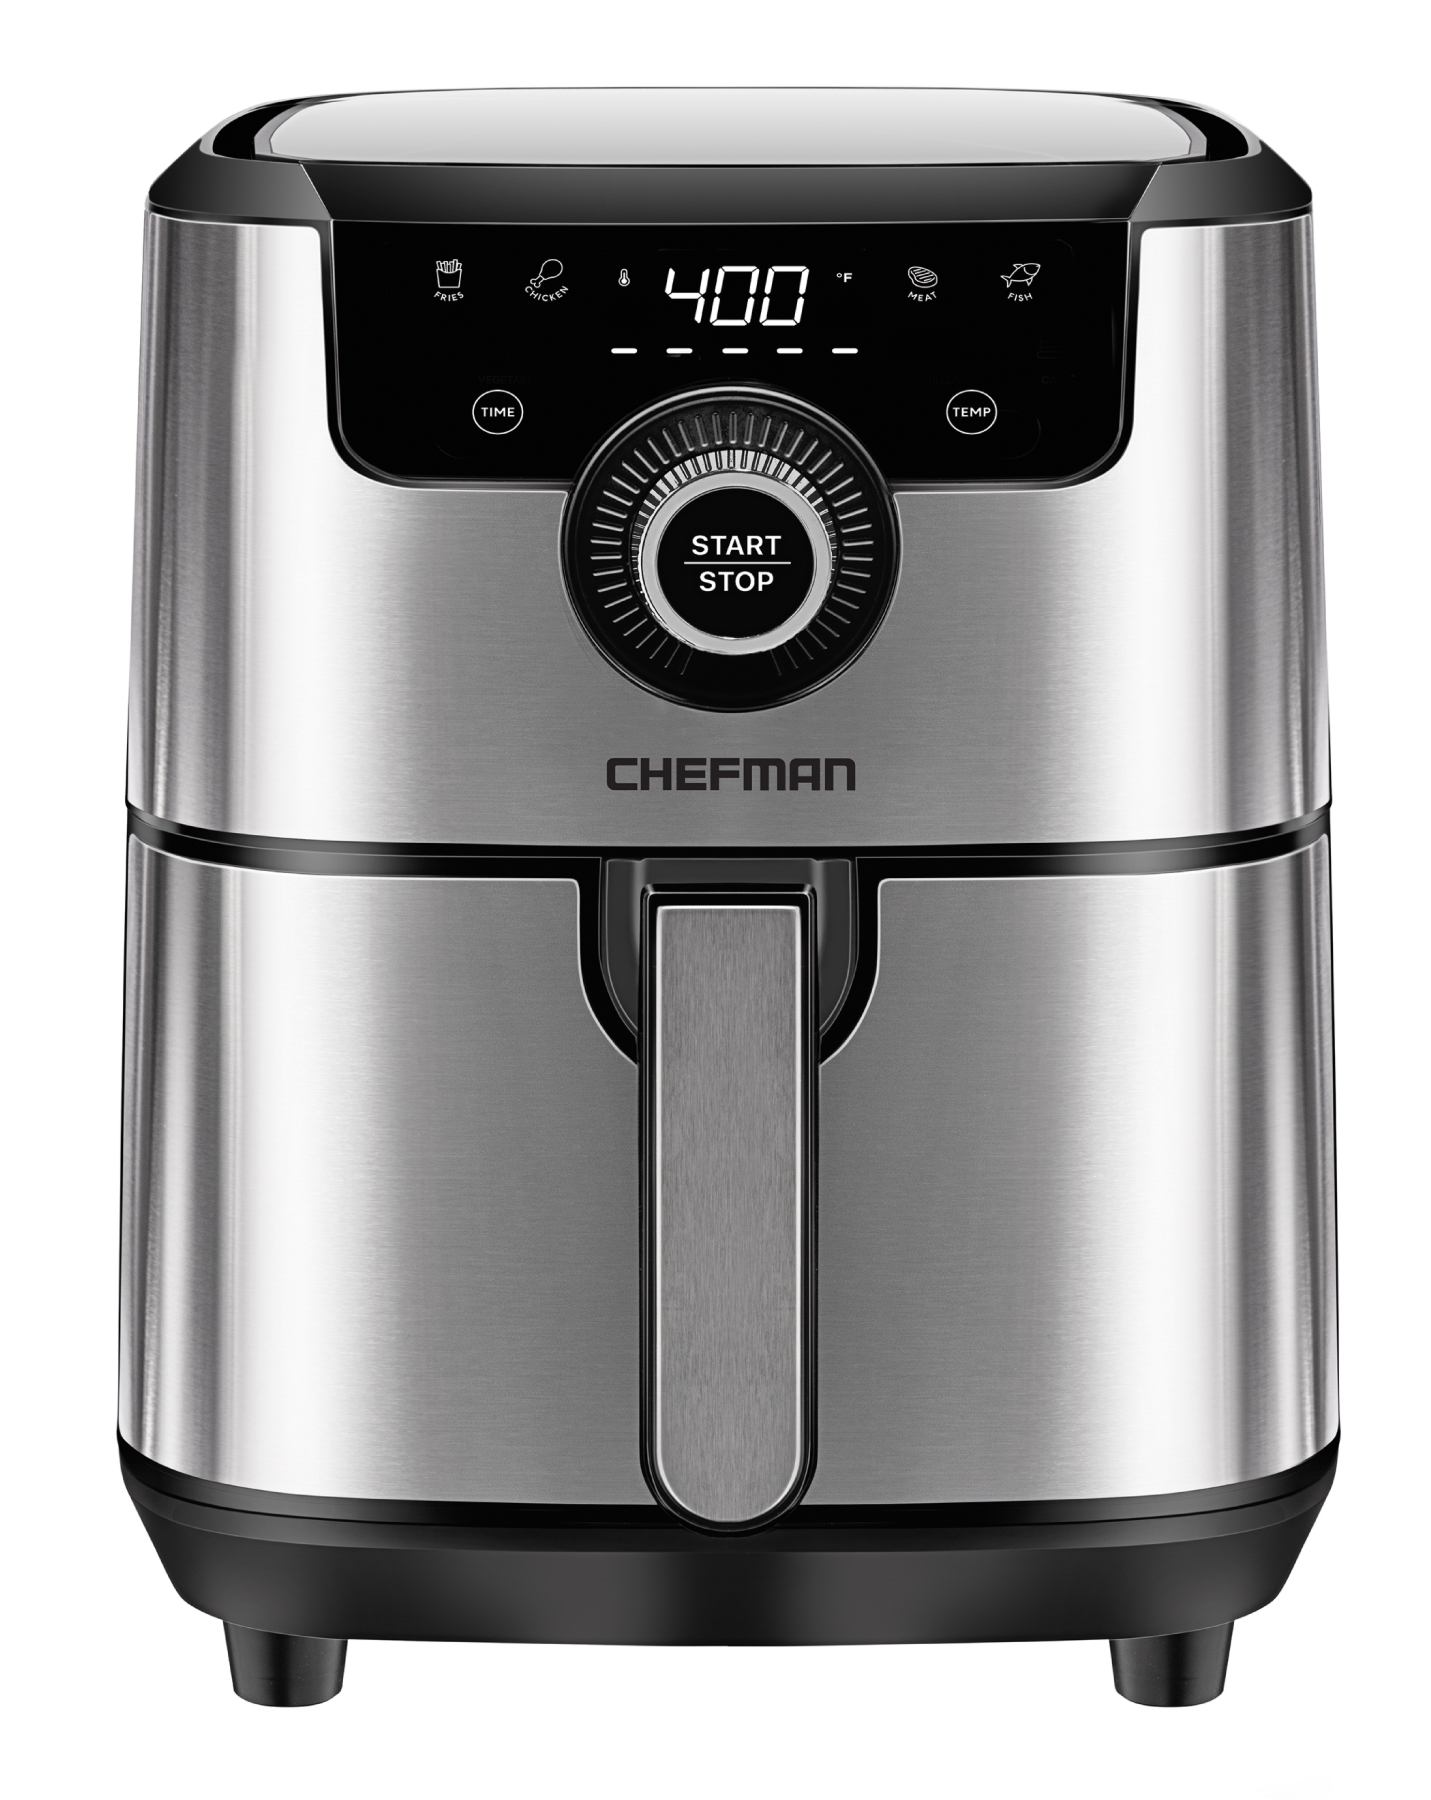 CHEFMAN TurboFry Touch 4.5 Qt Digital Air Fryer Silver Stainless Steel Open Box